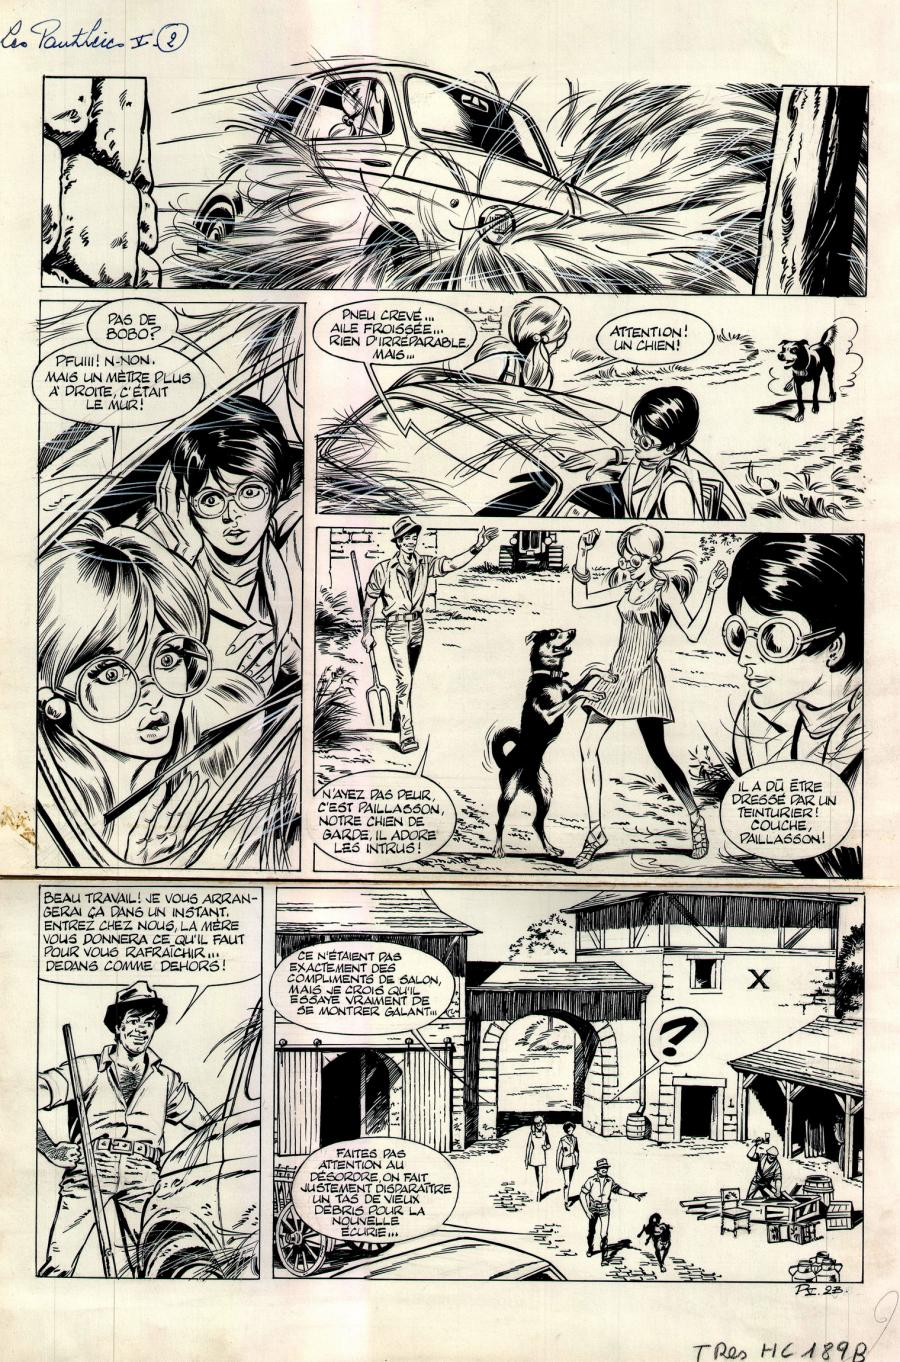 Edouard AIDANS 's original comic page. LES PANTHERES comic series